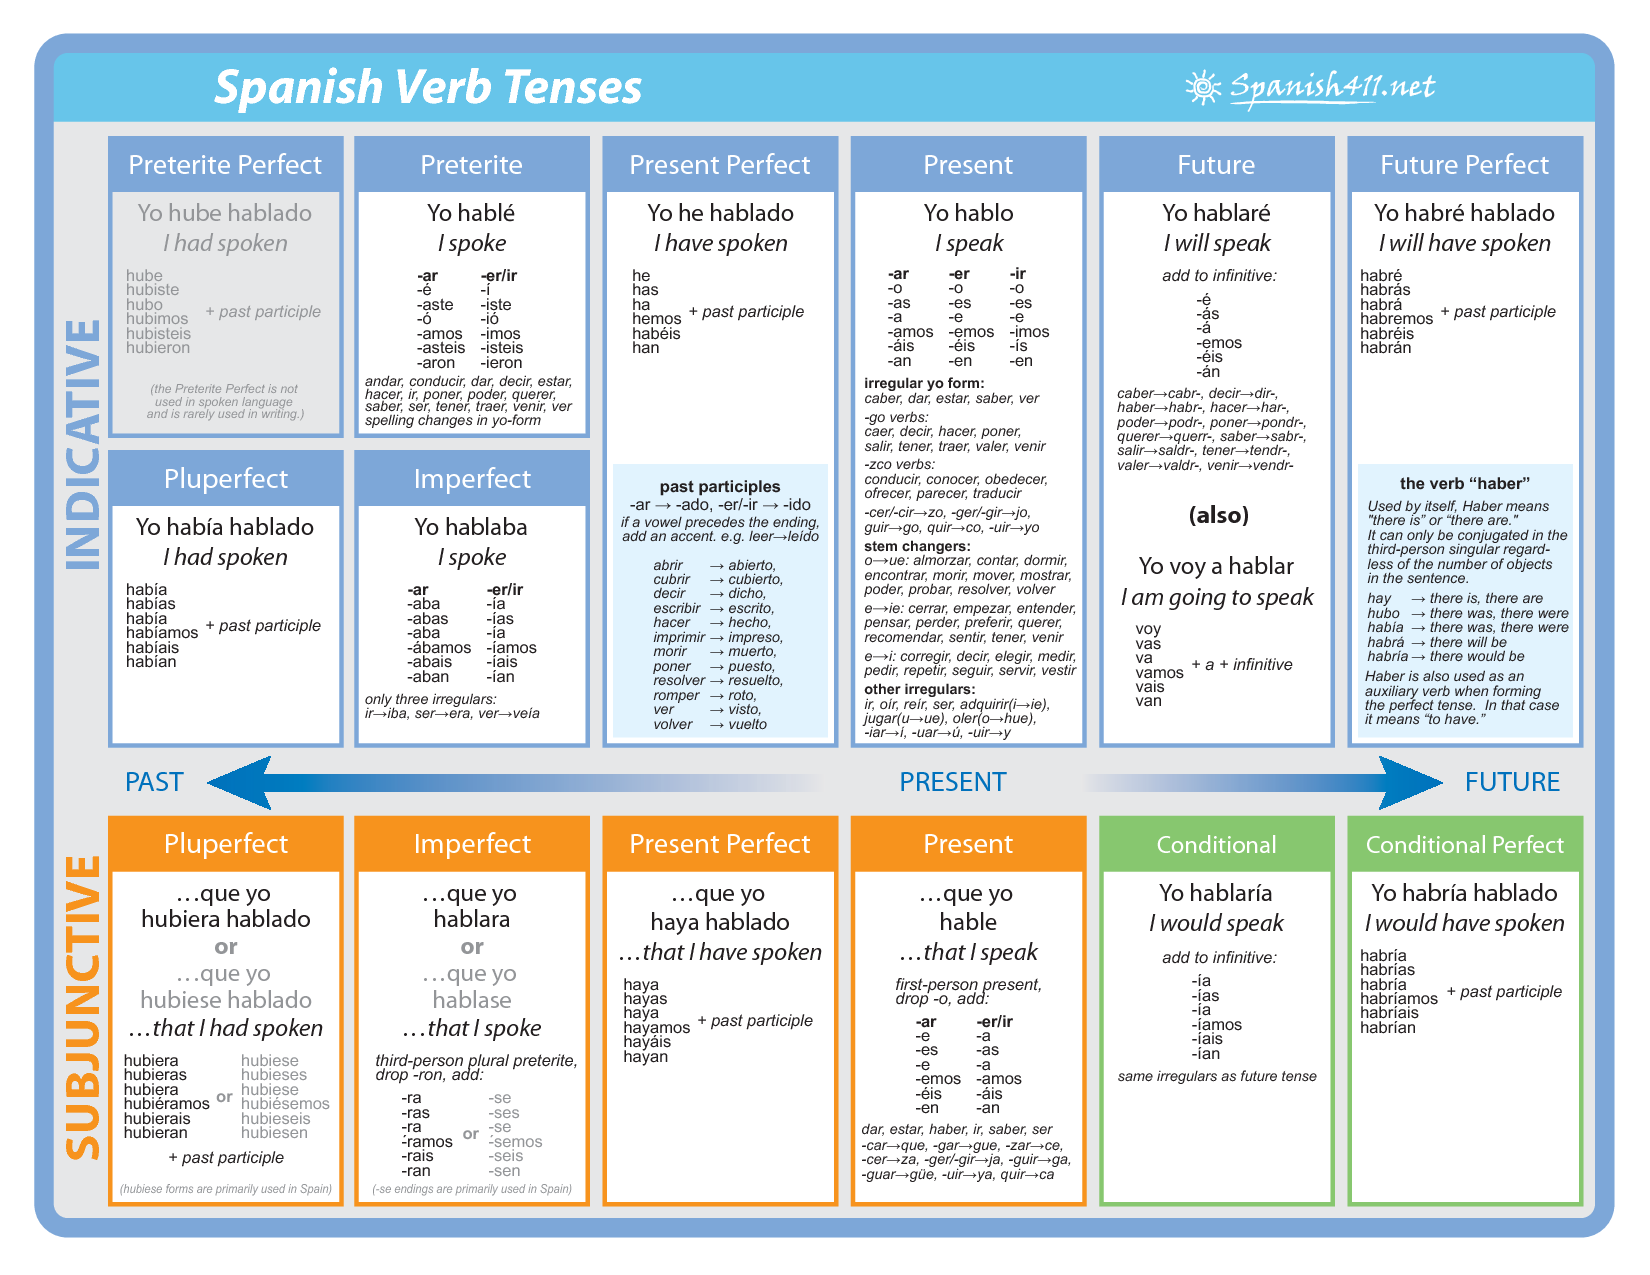 photograph regarding Spanish Verb Conjugation Chart Printable called Spanish Verb Chart - Poster.ai Español Spanish tenses